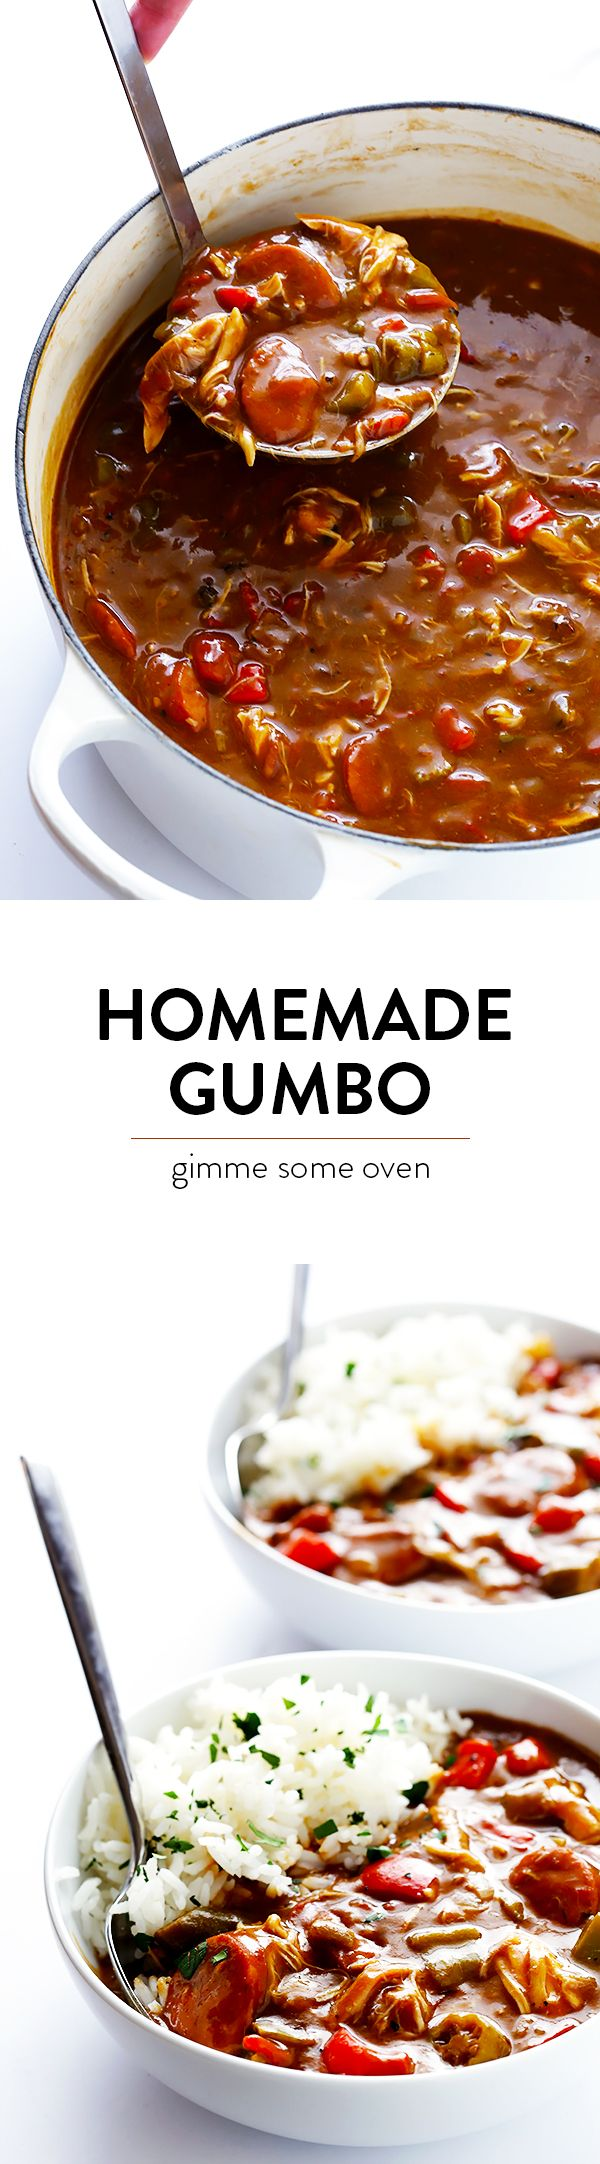 My All-Time Favorite Gumbo